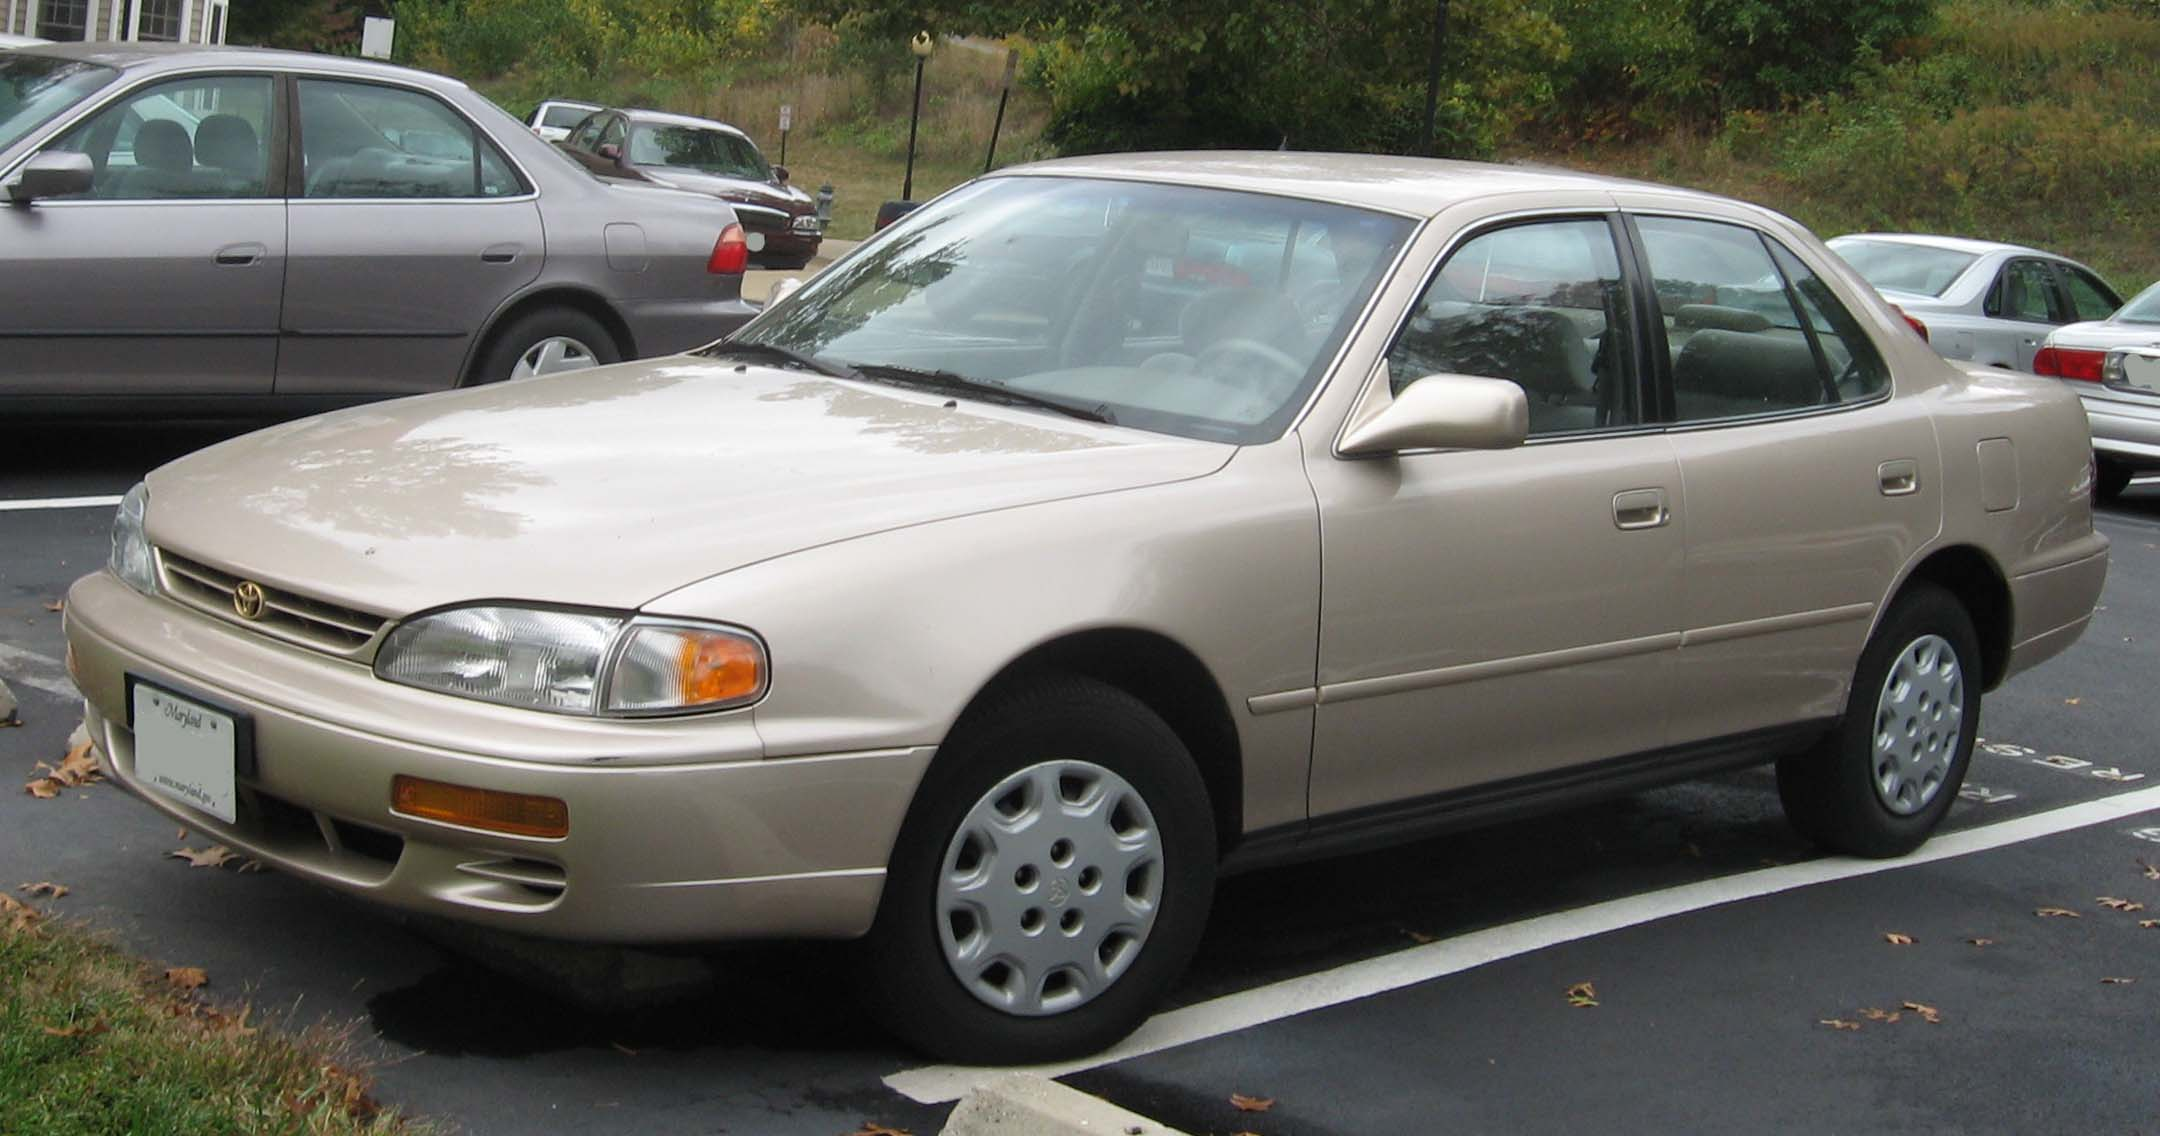 1995 Toyota Camry Image 1